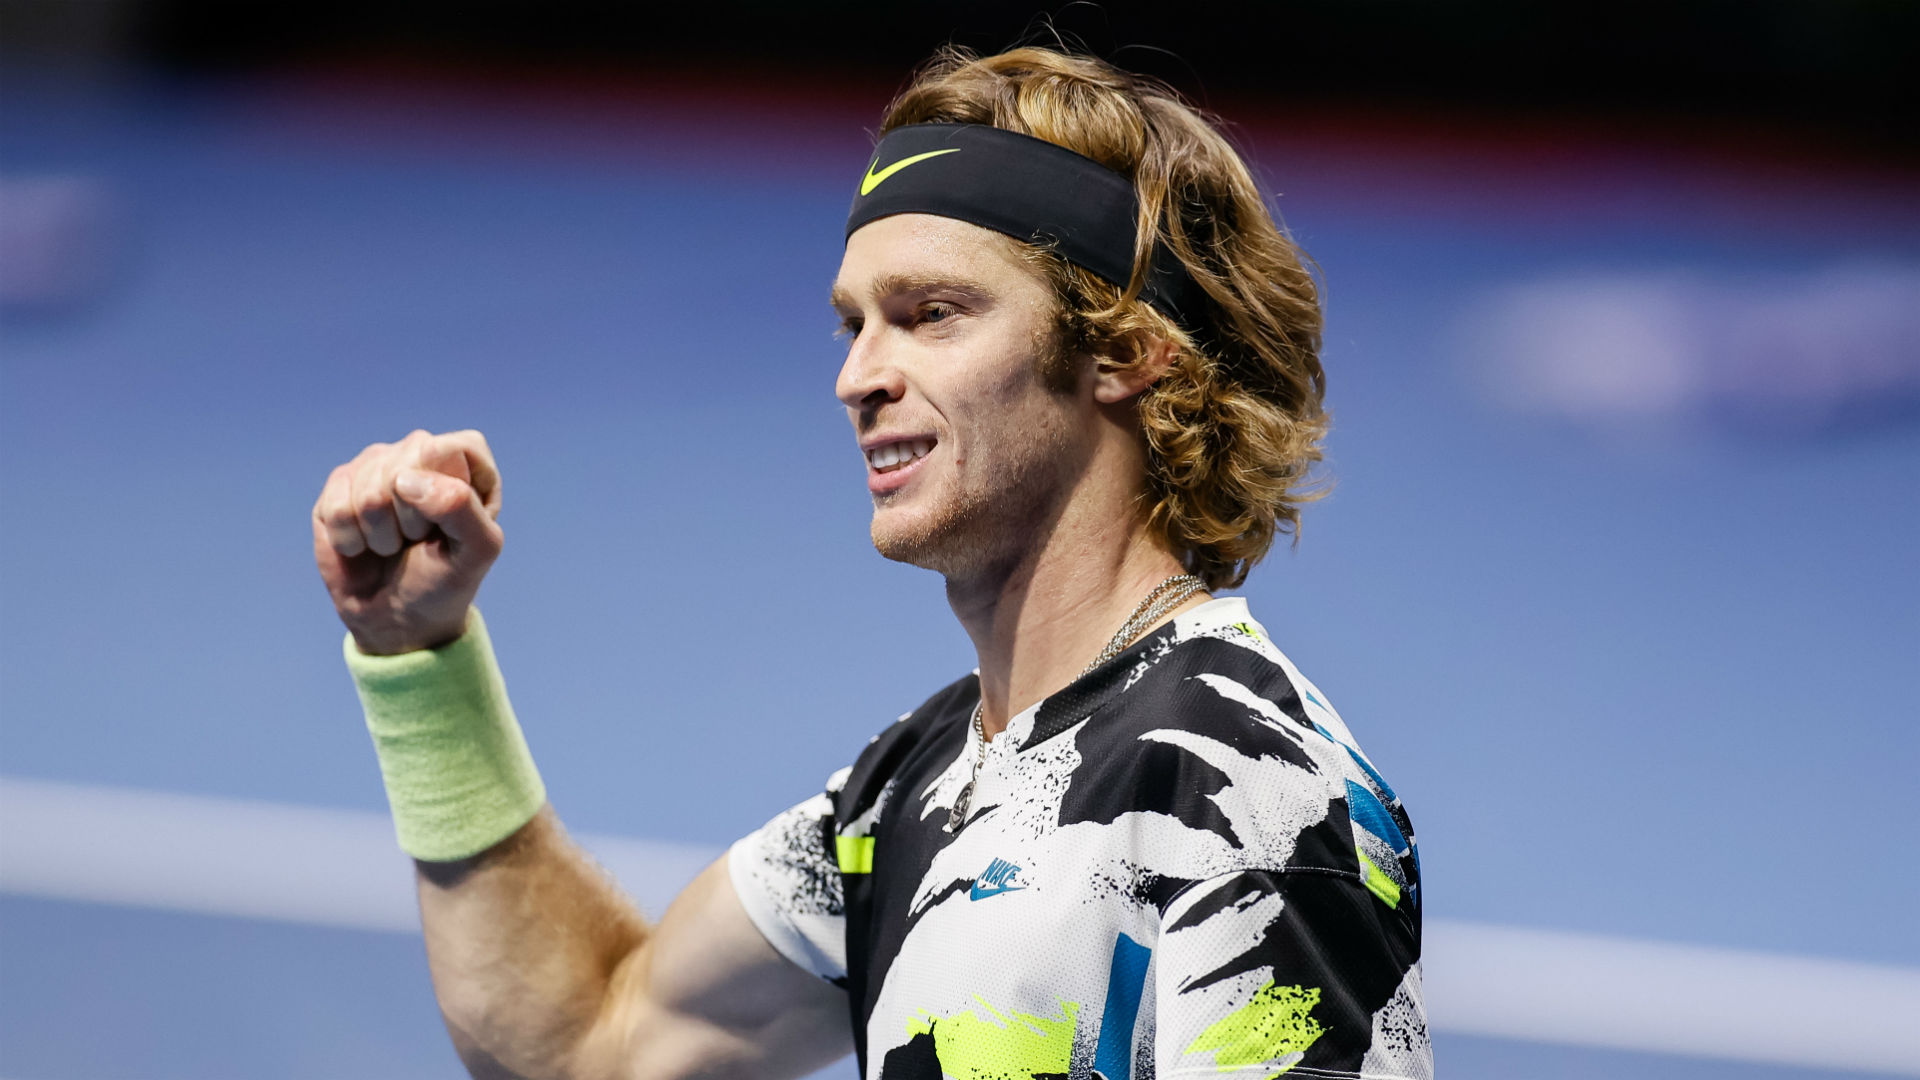 Rublev, Coric oust Shapovalov, Raonic in St. Petersburg Open semifinals